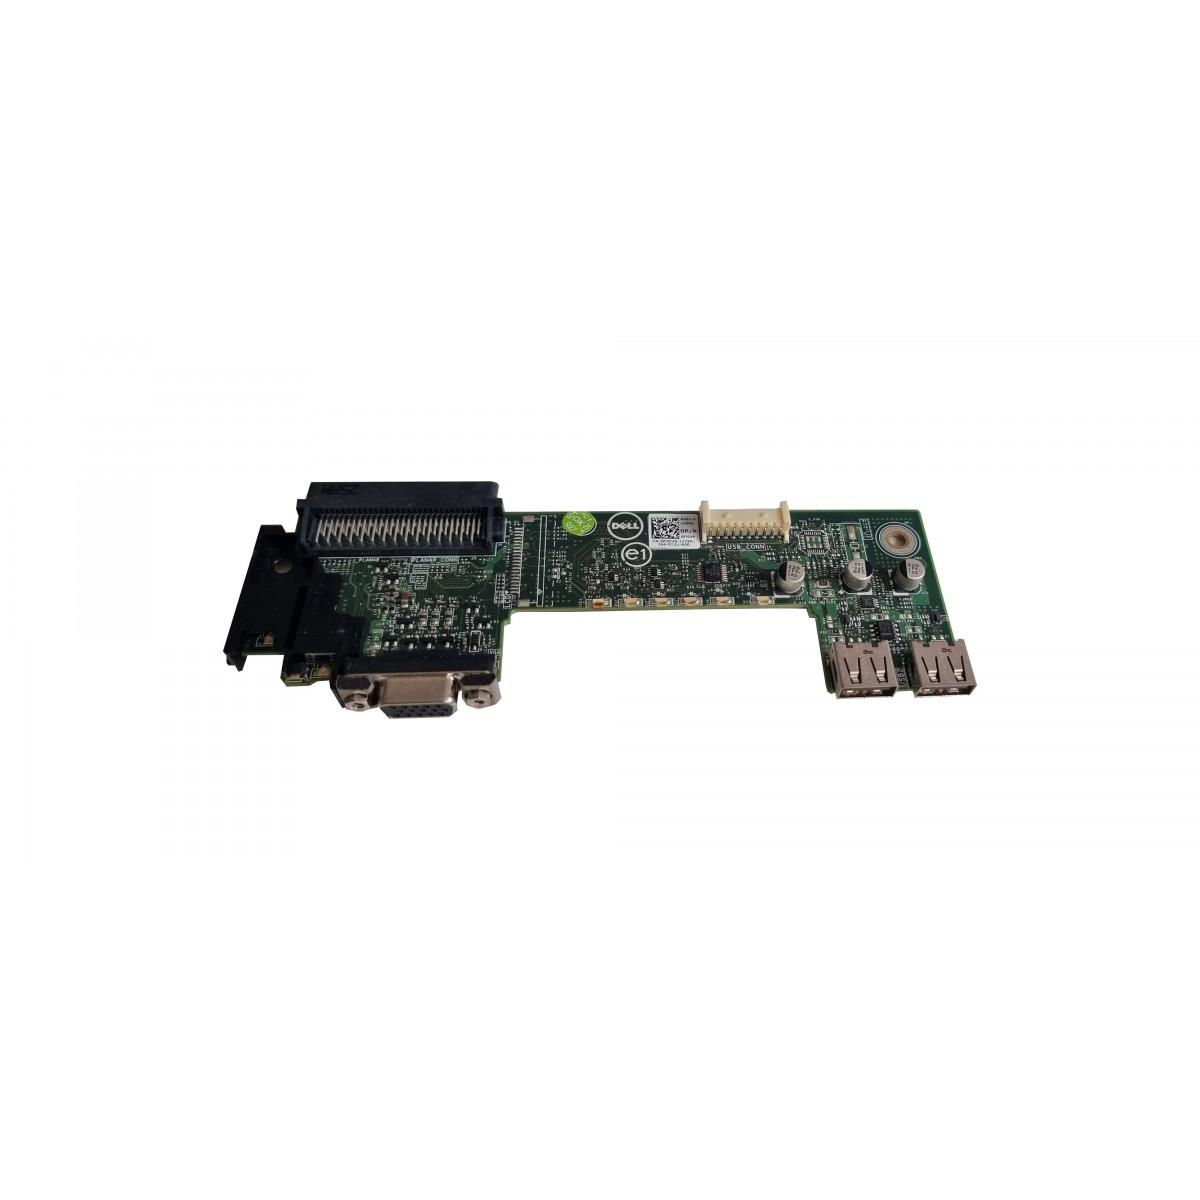 PAMIEC HP 1GB 333MHZ PC2700 Cl2.5 ECC 331562-051